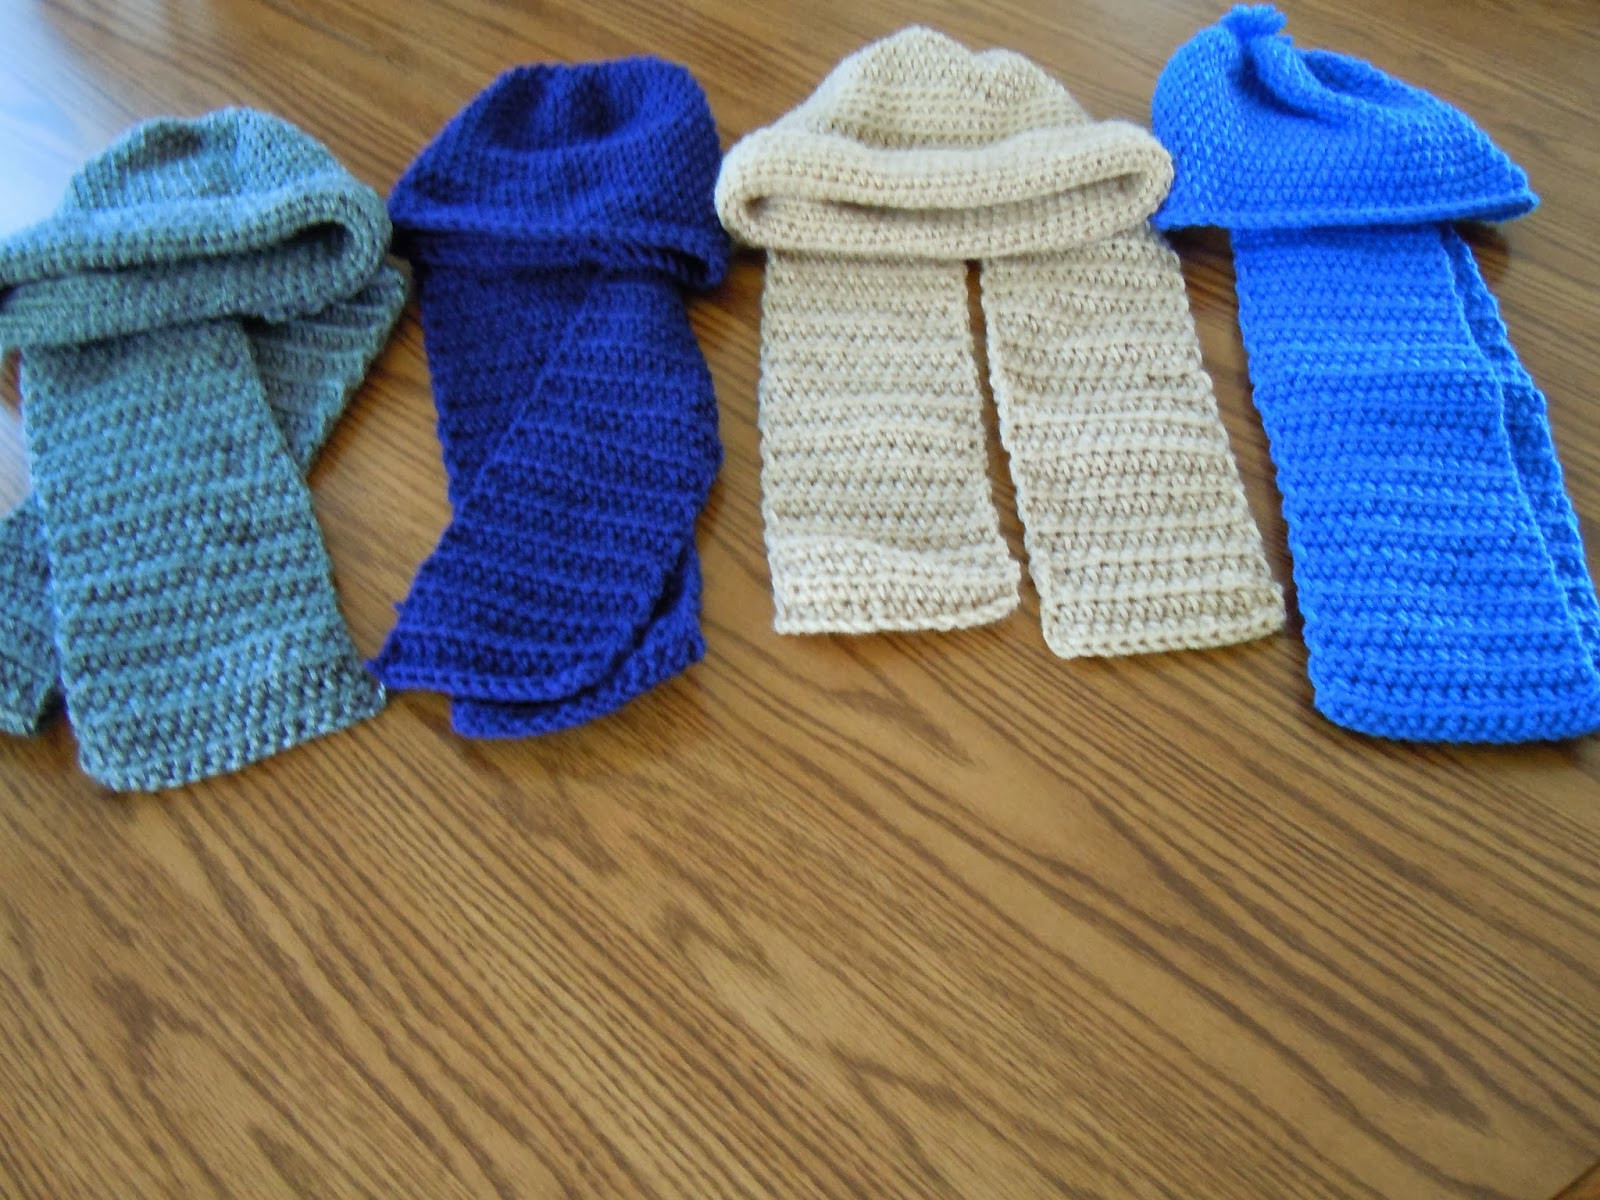 Awesome Craftdrawer Crafts New Easy to Crochet Hat and Scarf Crochet Hat and Scarf Patterns Free Of Amazing 47 Pics Crochet Hat and Scarf Patterns Free